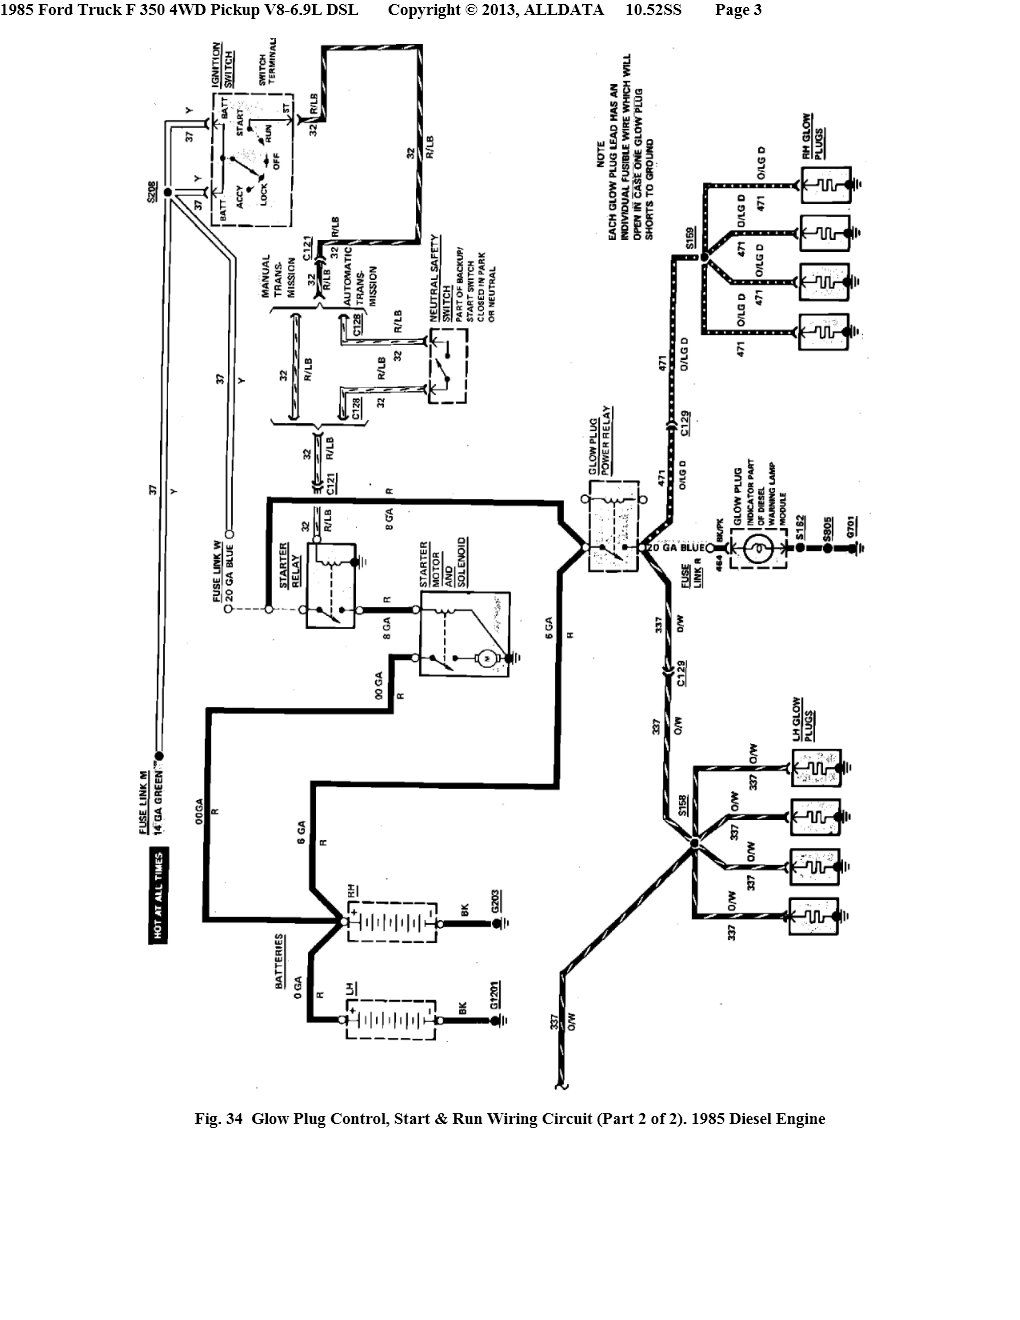 1987 nissan 300zx wiring diagram on 2005 ford f 150 lift kit